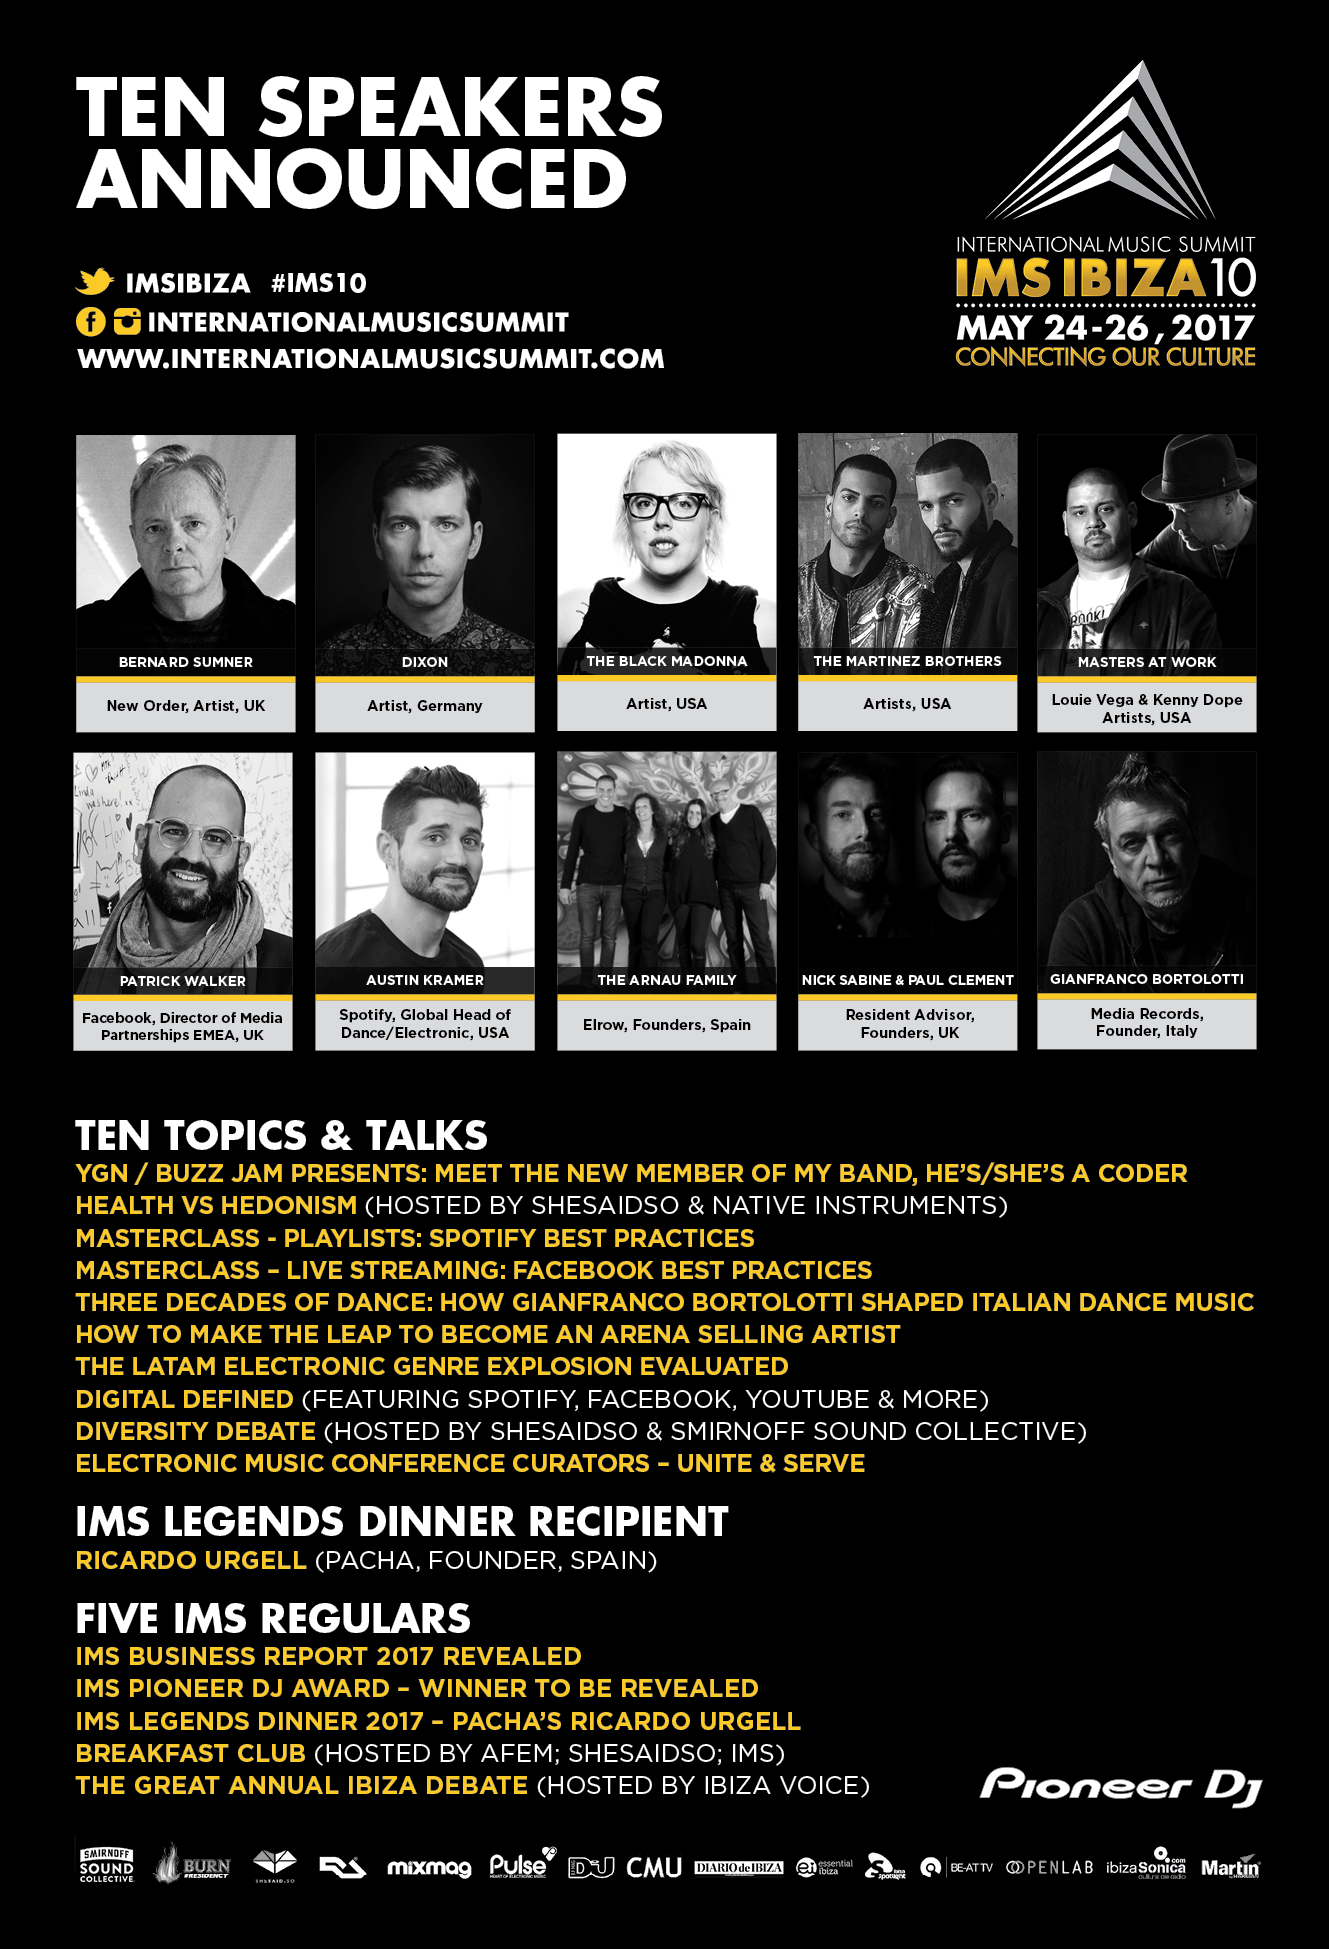 Speaker-Announcement-IMS-Ibiza-20172